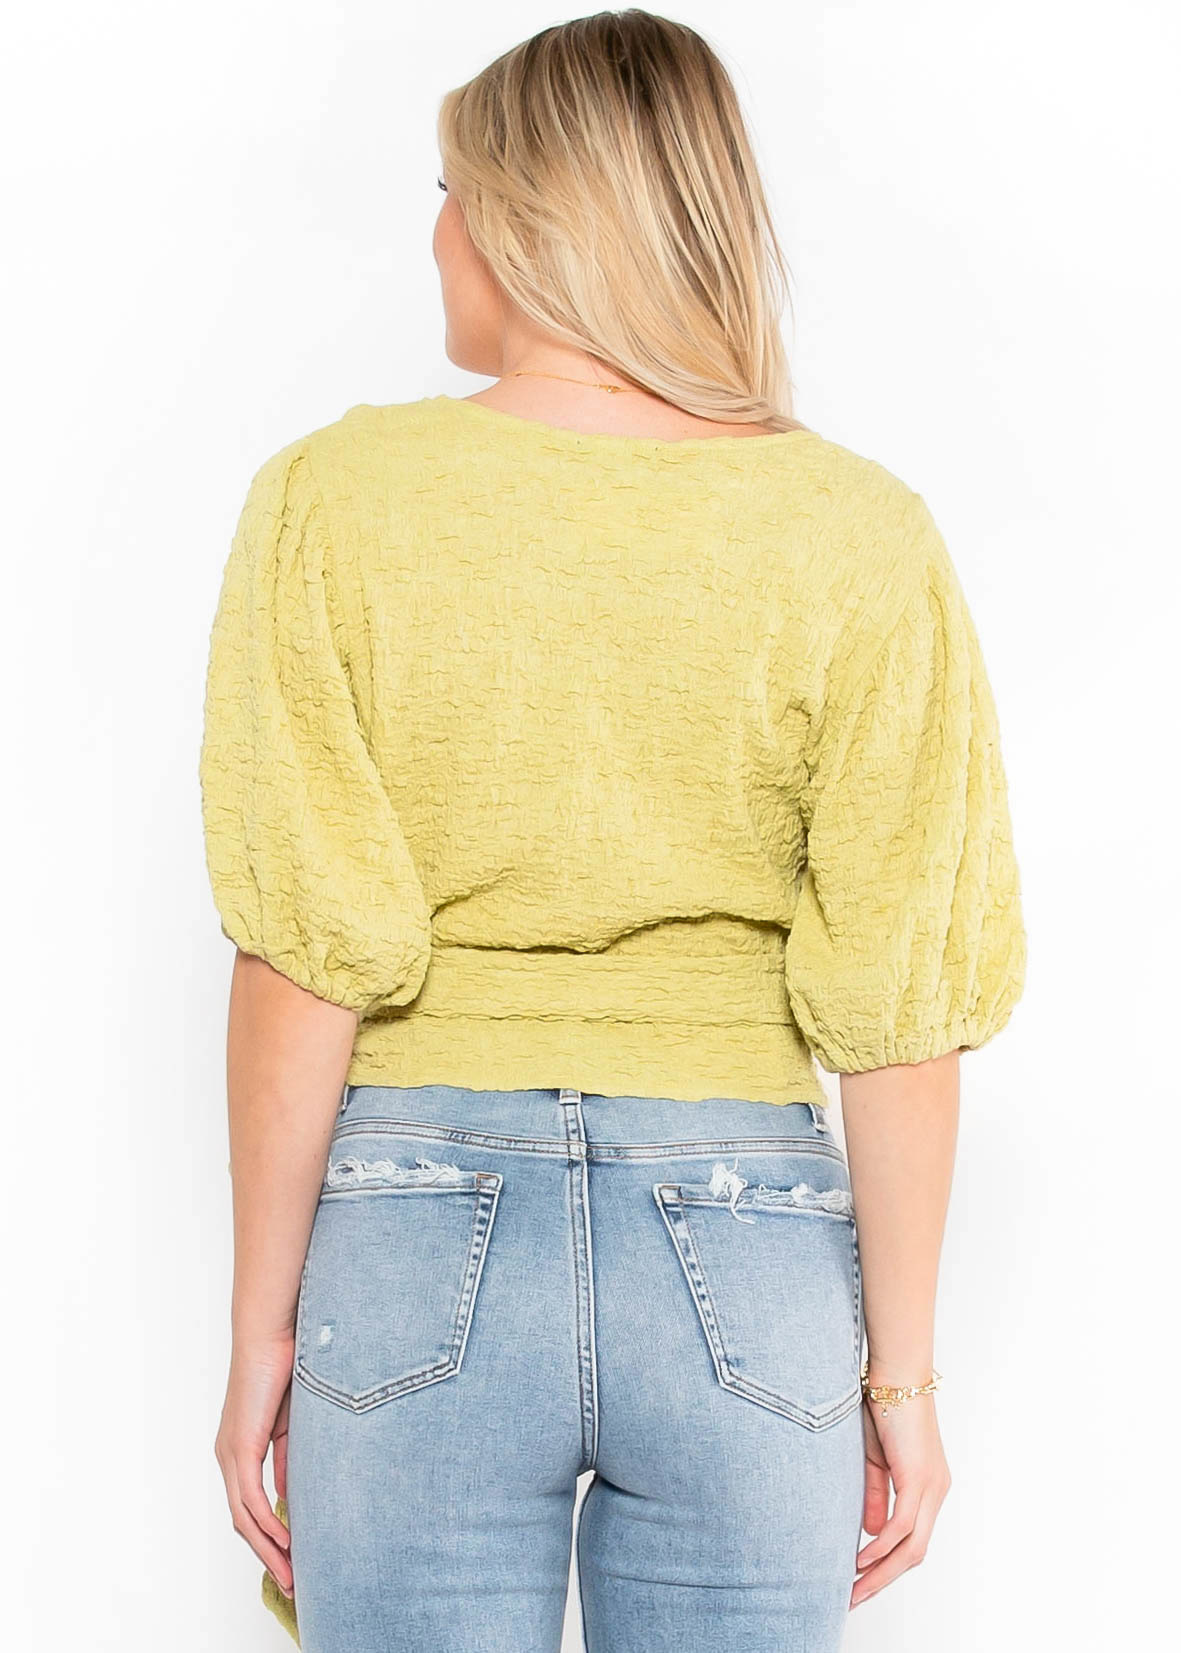 BRIGHT SIDE WRAP TOP - LIME